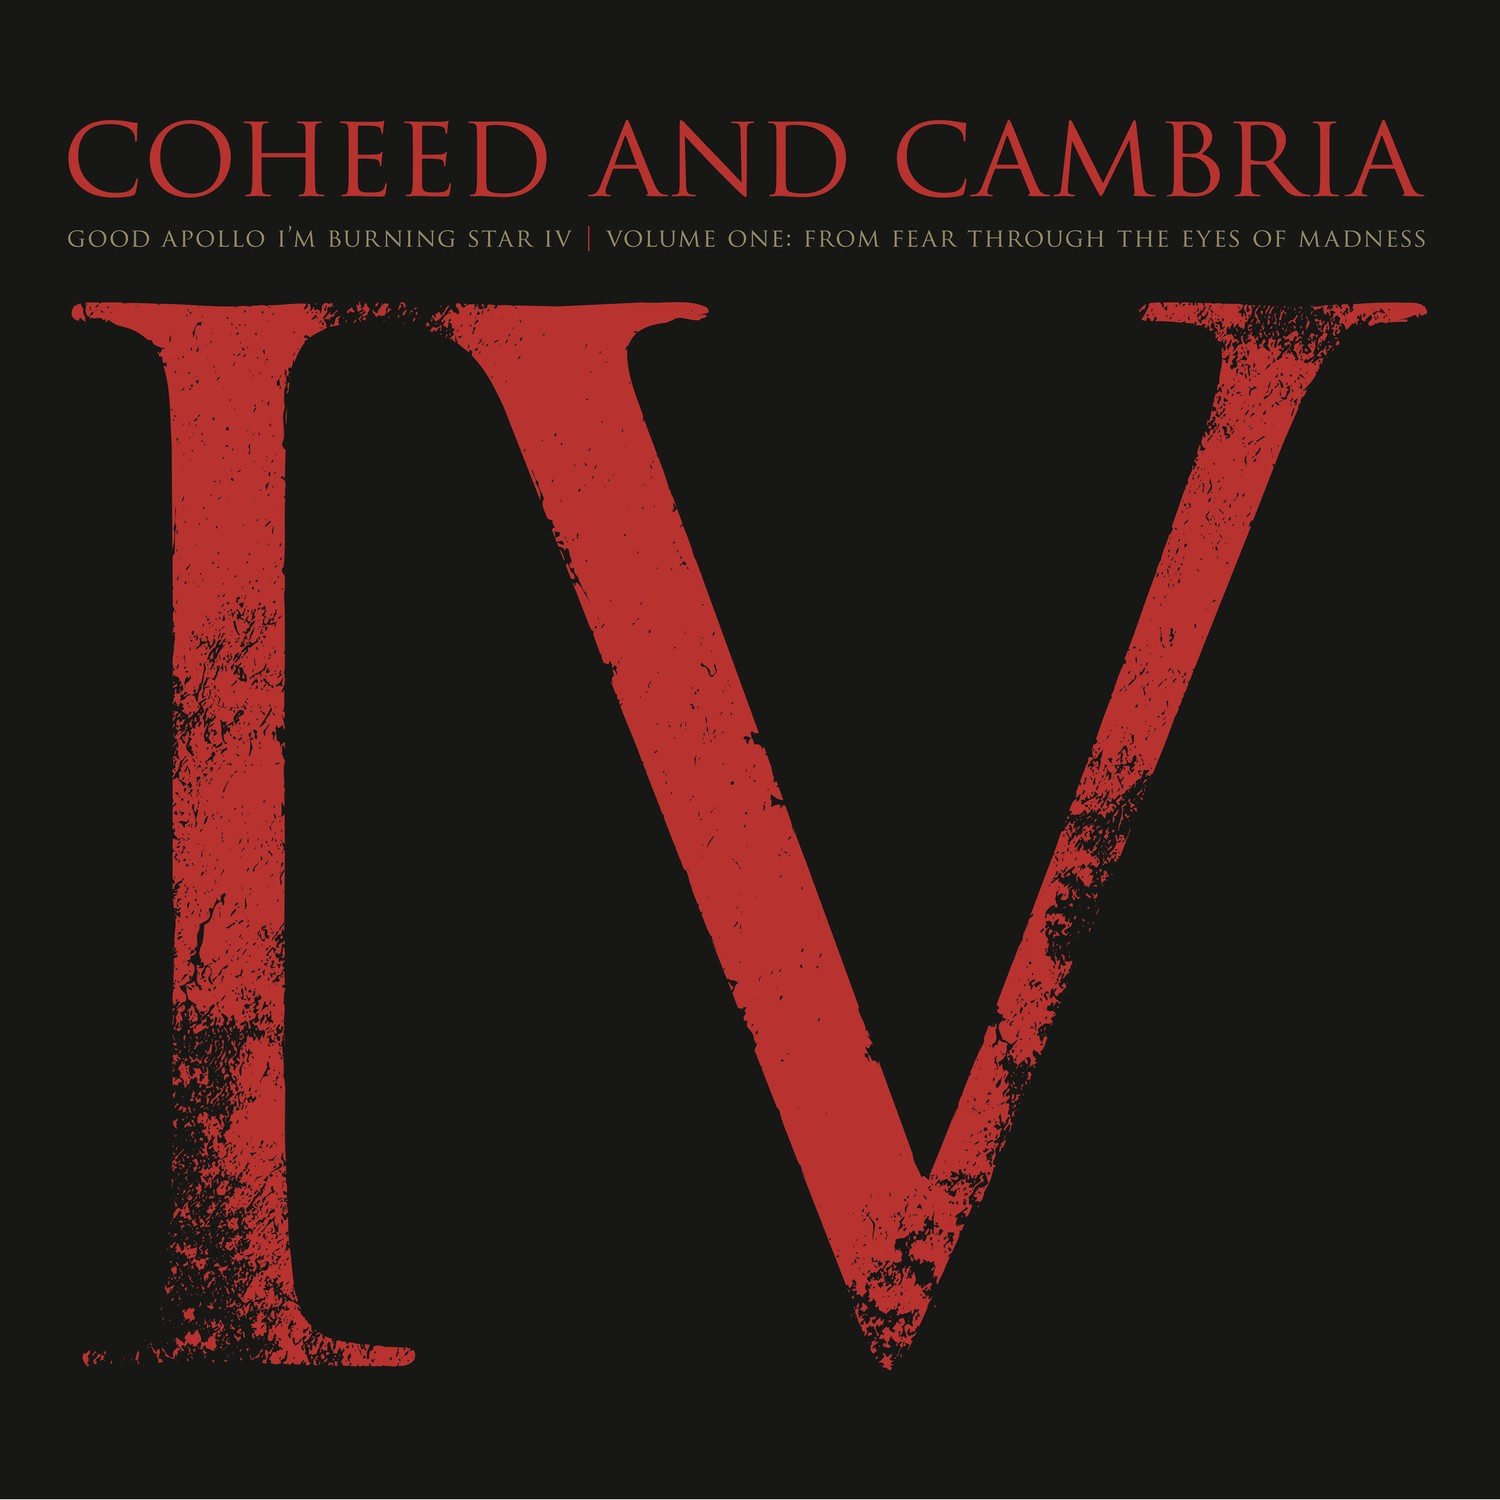 Coheed and Cambria - Good Apollo, I'm Burning Star IV 2XLP